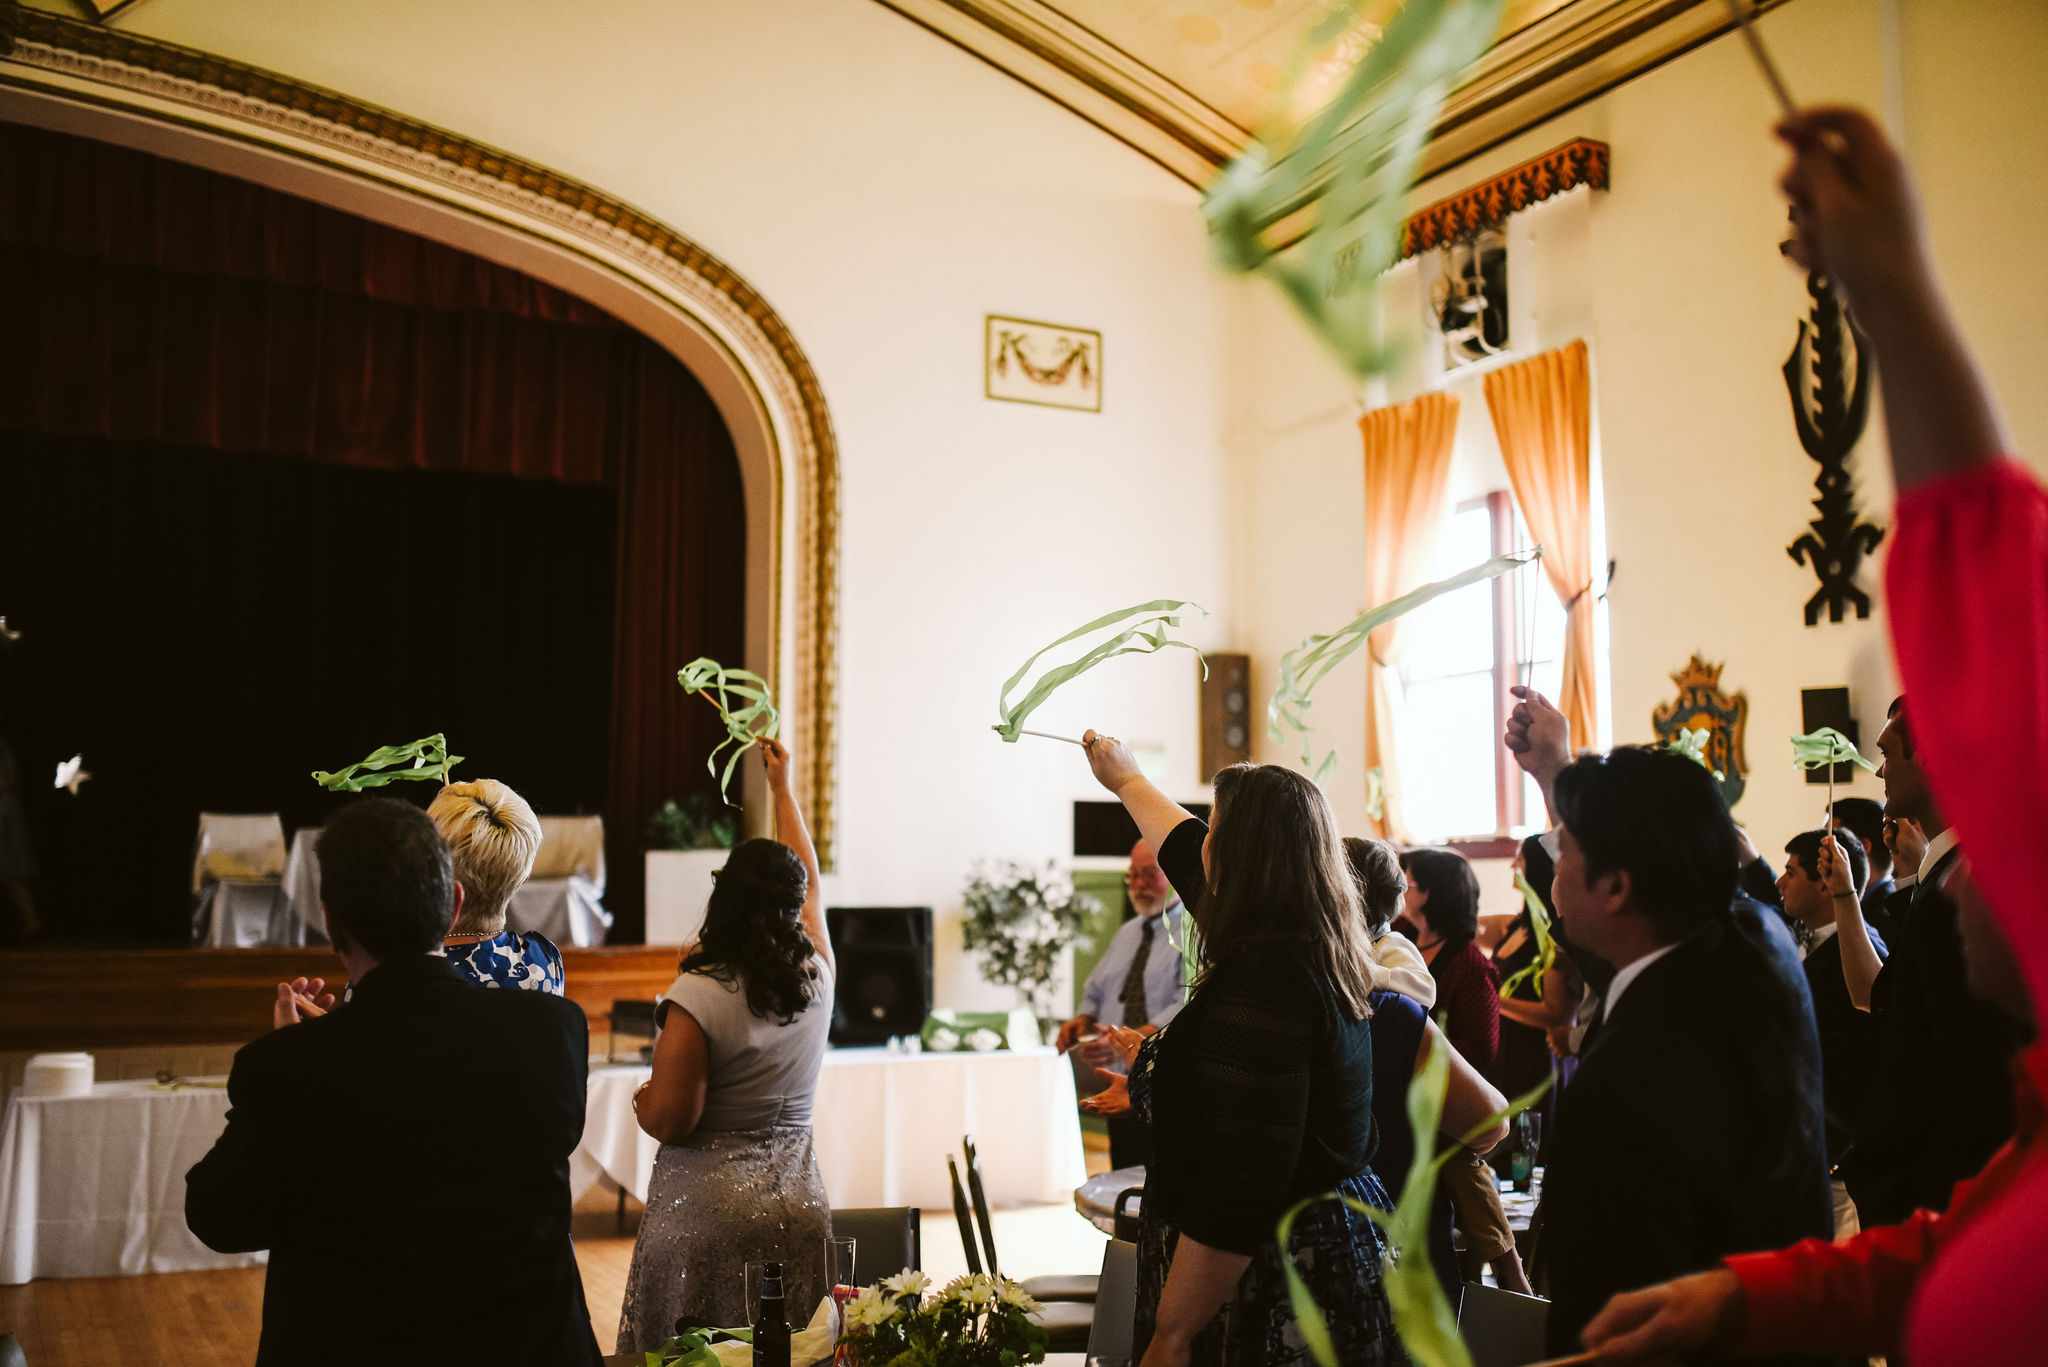 Baltimore, Lithuanian Dance Hall, Maryland Wedding Photographer, Vintage, Classic, 50s Style, Wedding Guests Waving Streamers